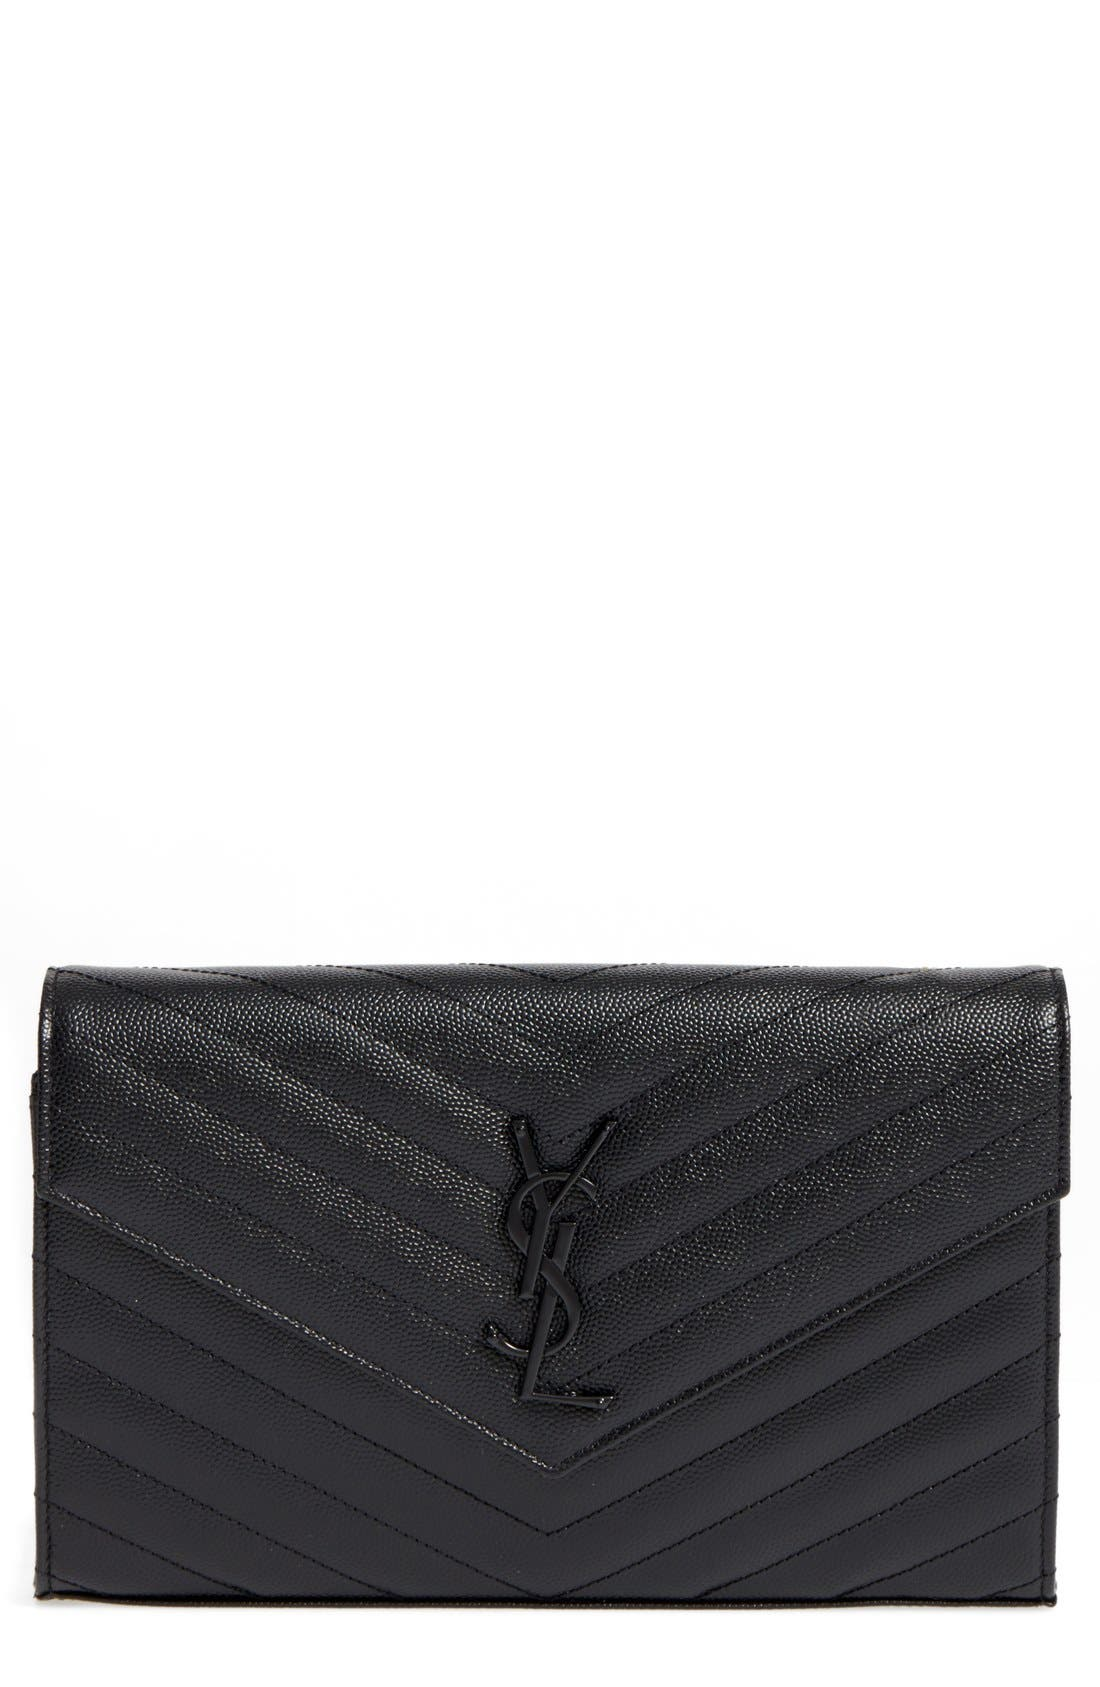 Alternate Image 1 Selected - Saint Laurent Monogram Quilted Leather Wallet on a Chain